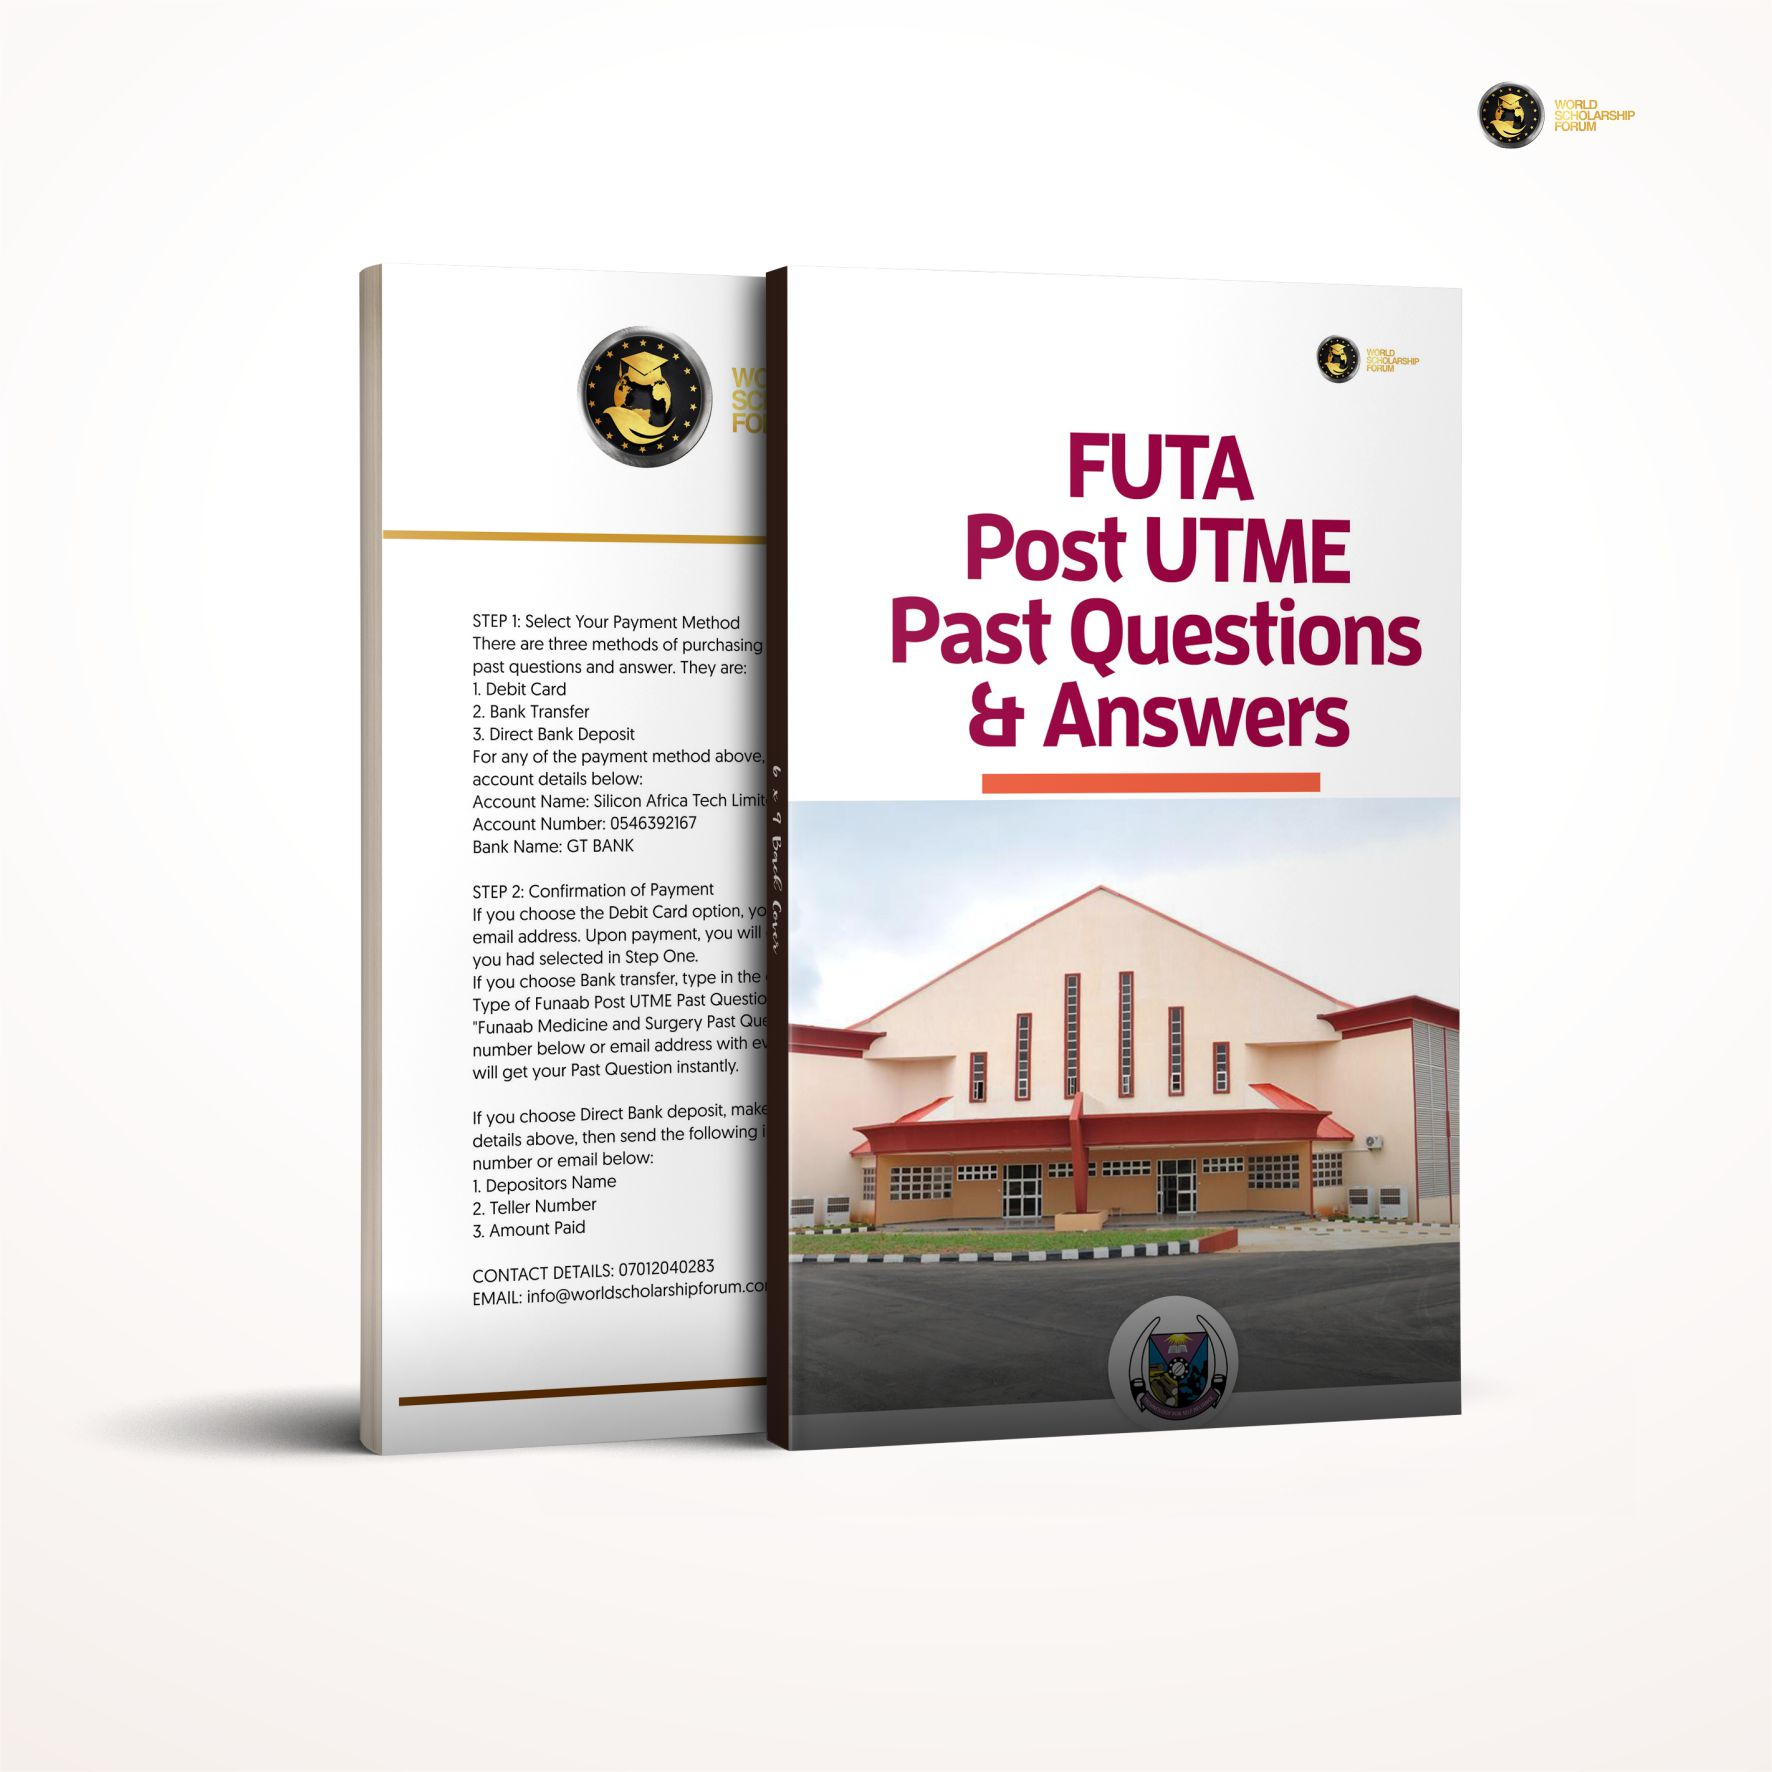 futa-post-utme-past-questions-answers